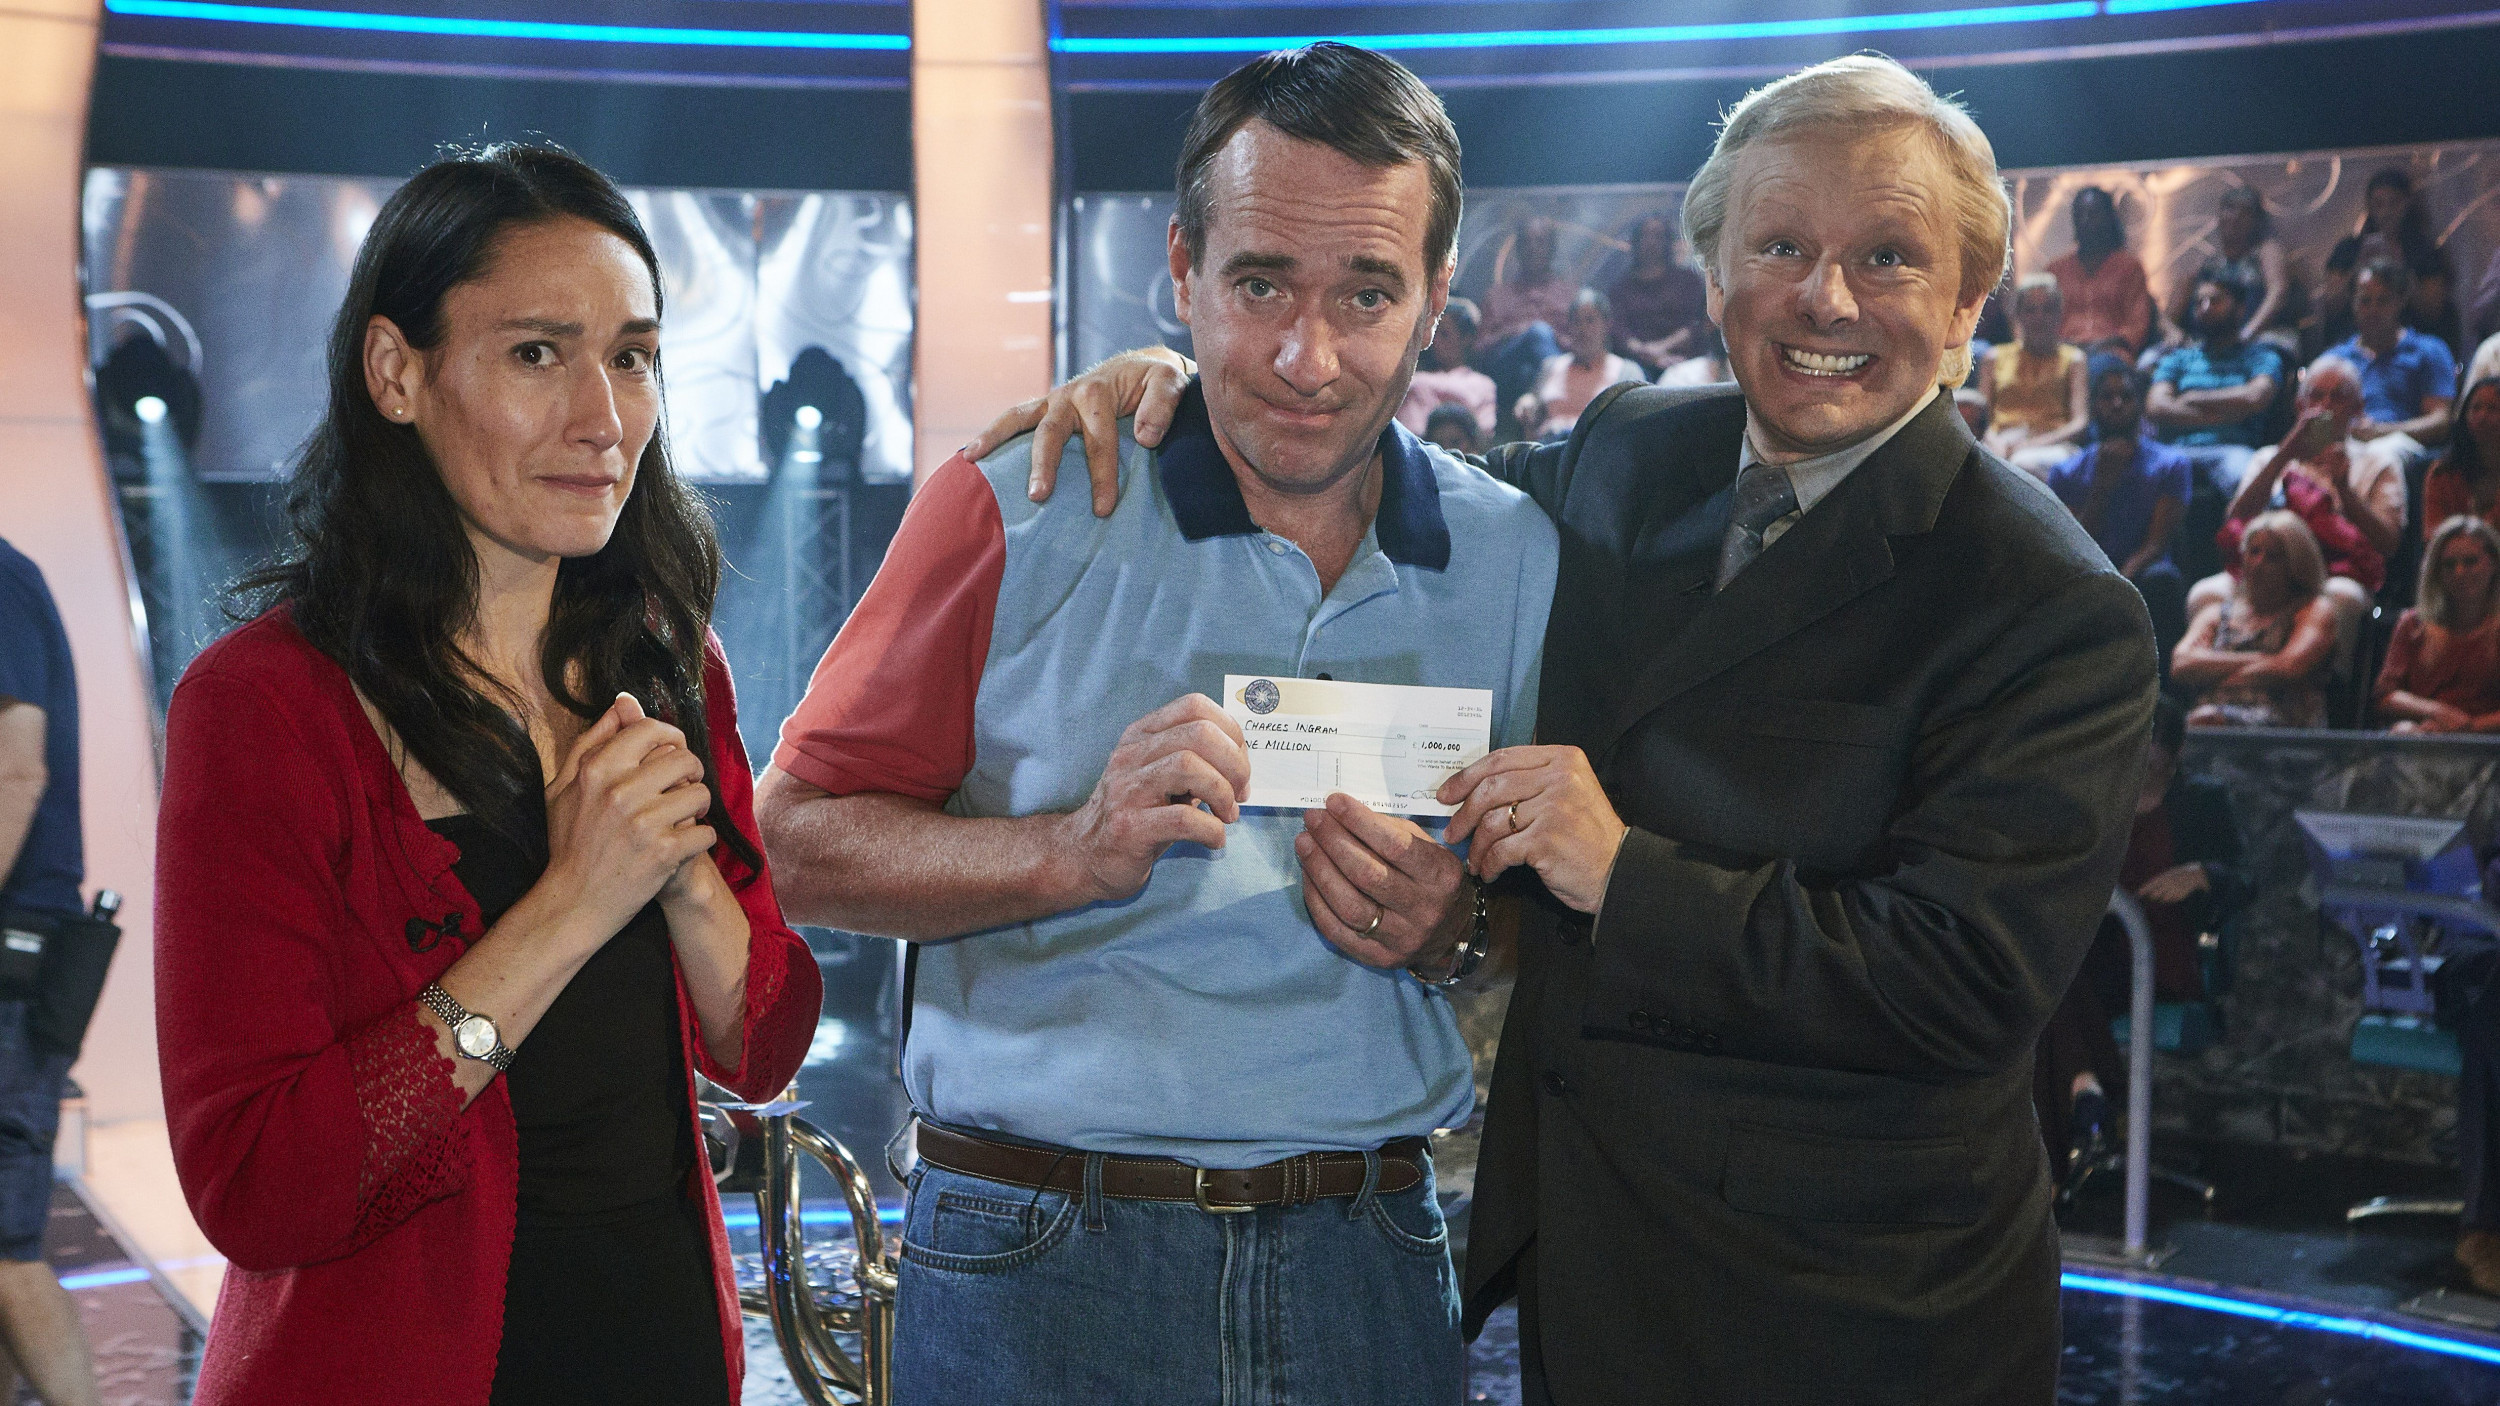 'Quiz' on AMC tells the true story of one of the greatest ever game show scandals